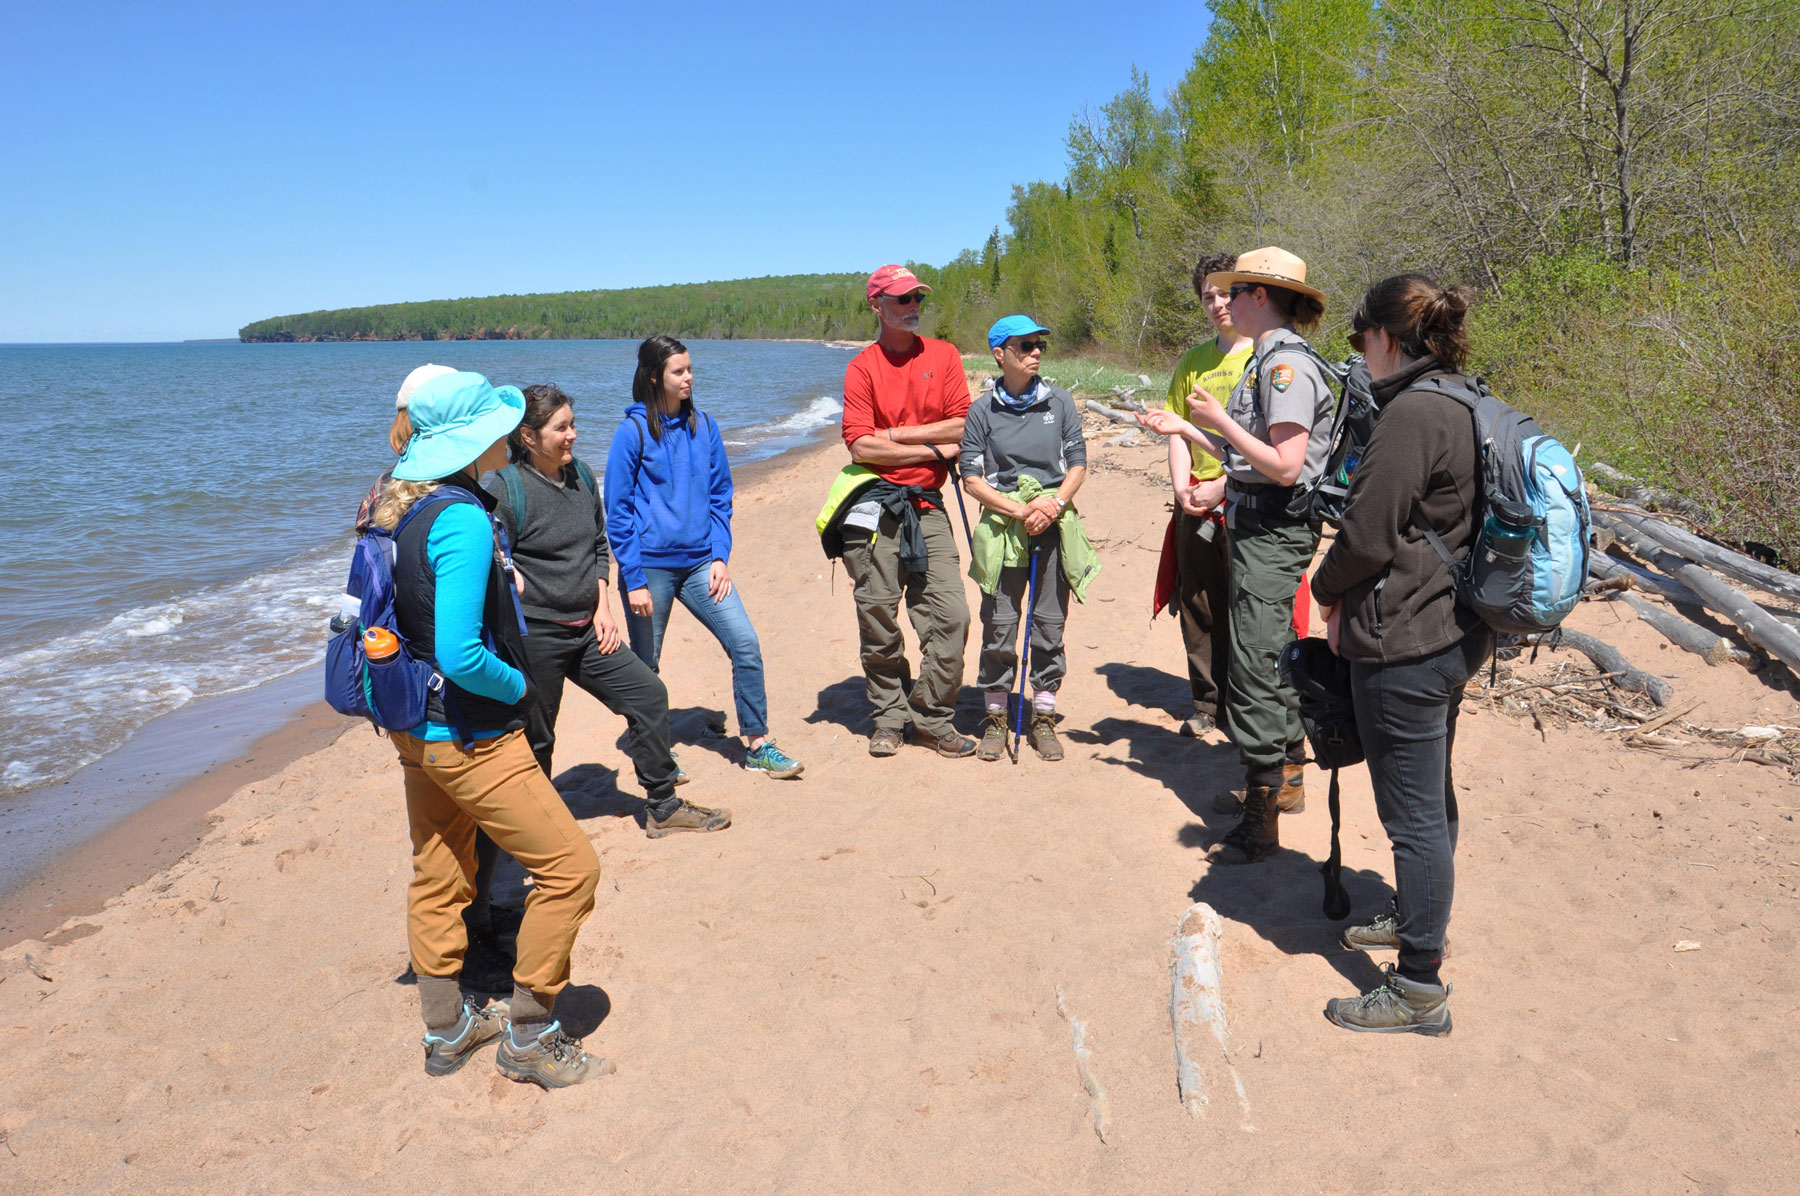 Sophie (far right) with ranger Caroline Twombly and park staff at Meyers Beach during seasonal training